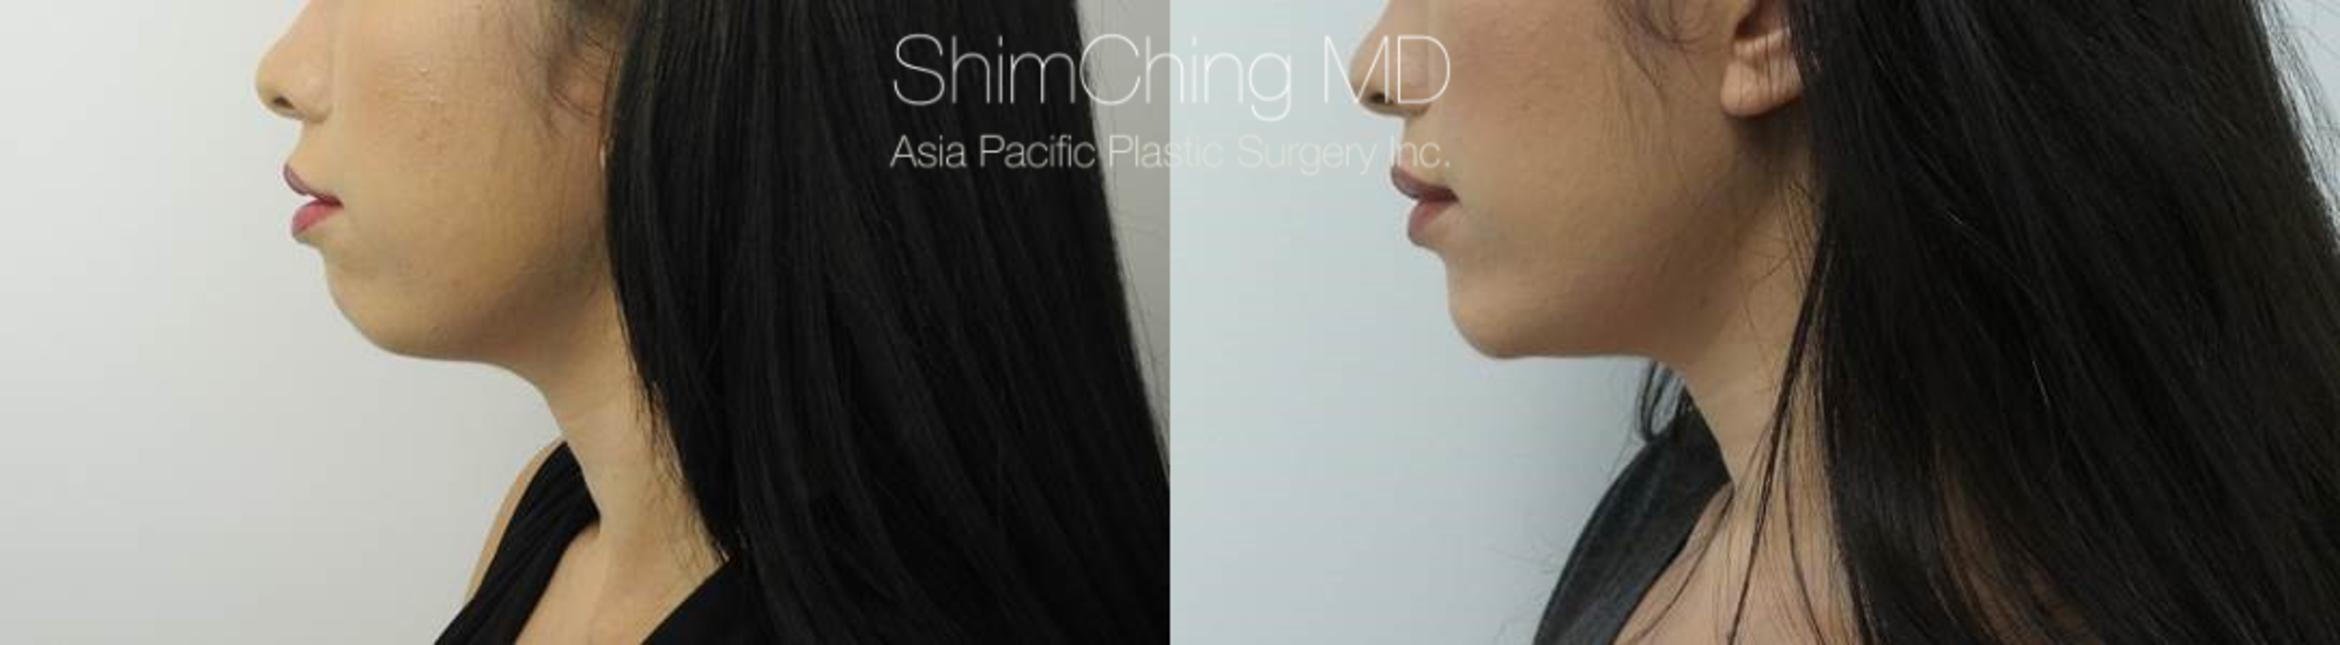 Chin Case 17 Before & After View #2 | Honolulu, HI | Shim Ching, MD: Asia Pacific Plastic Surgery